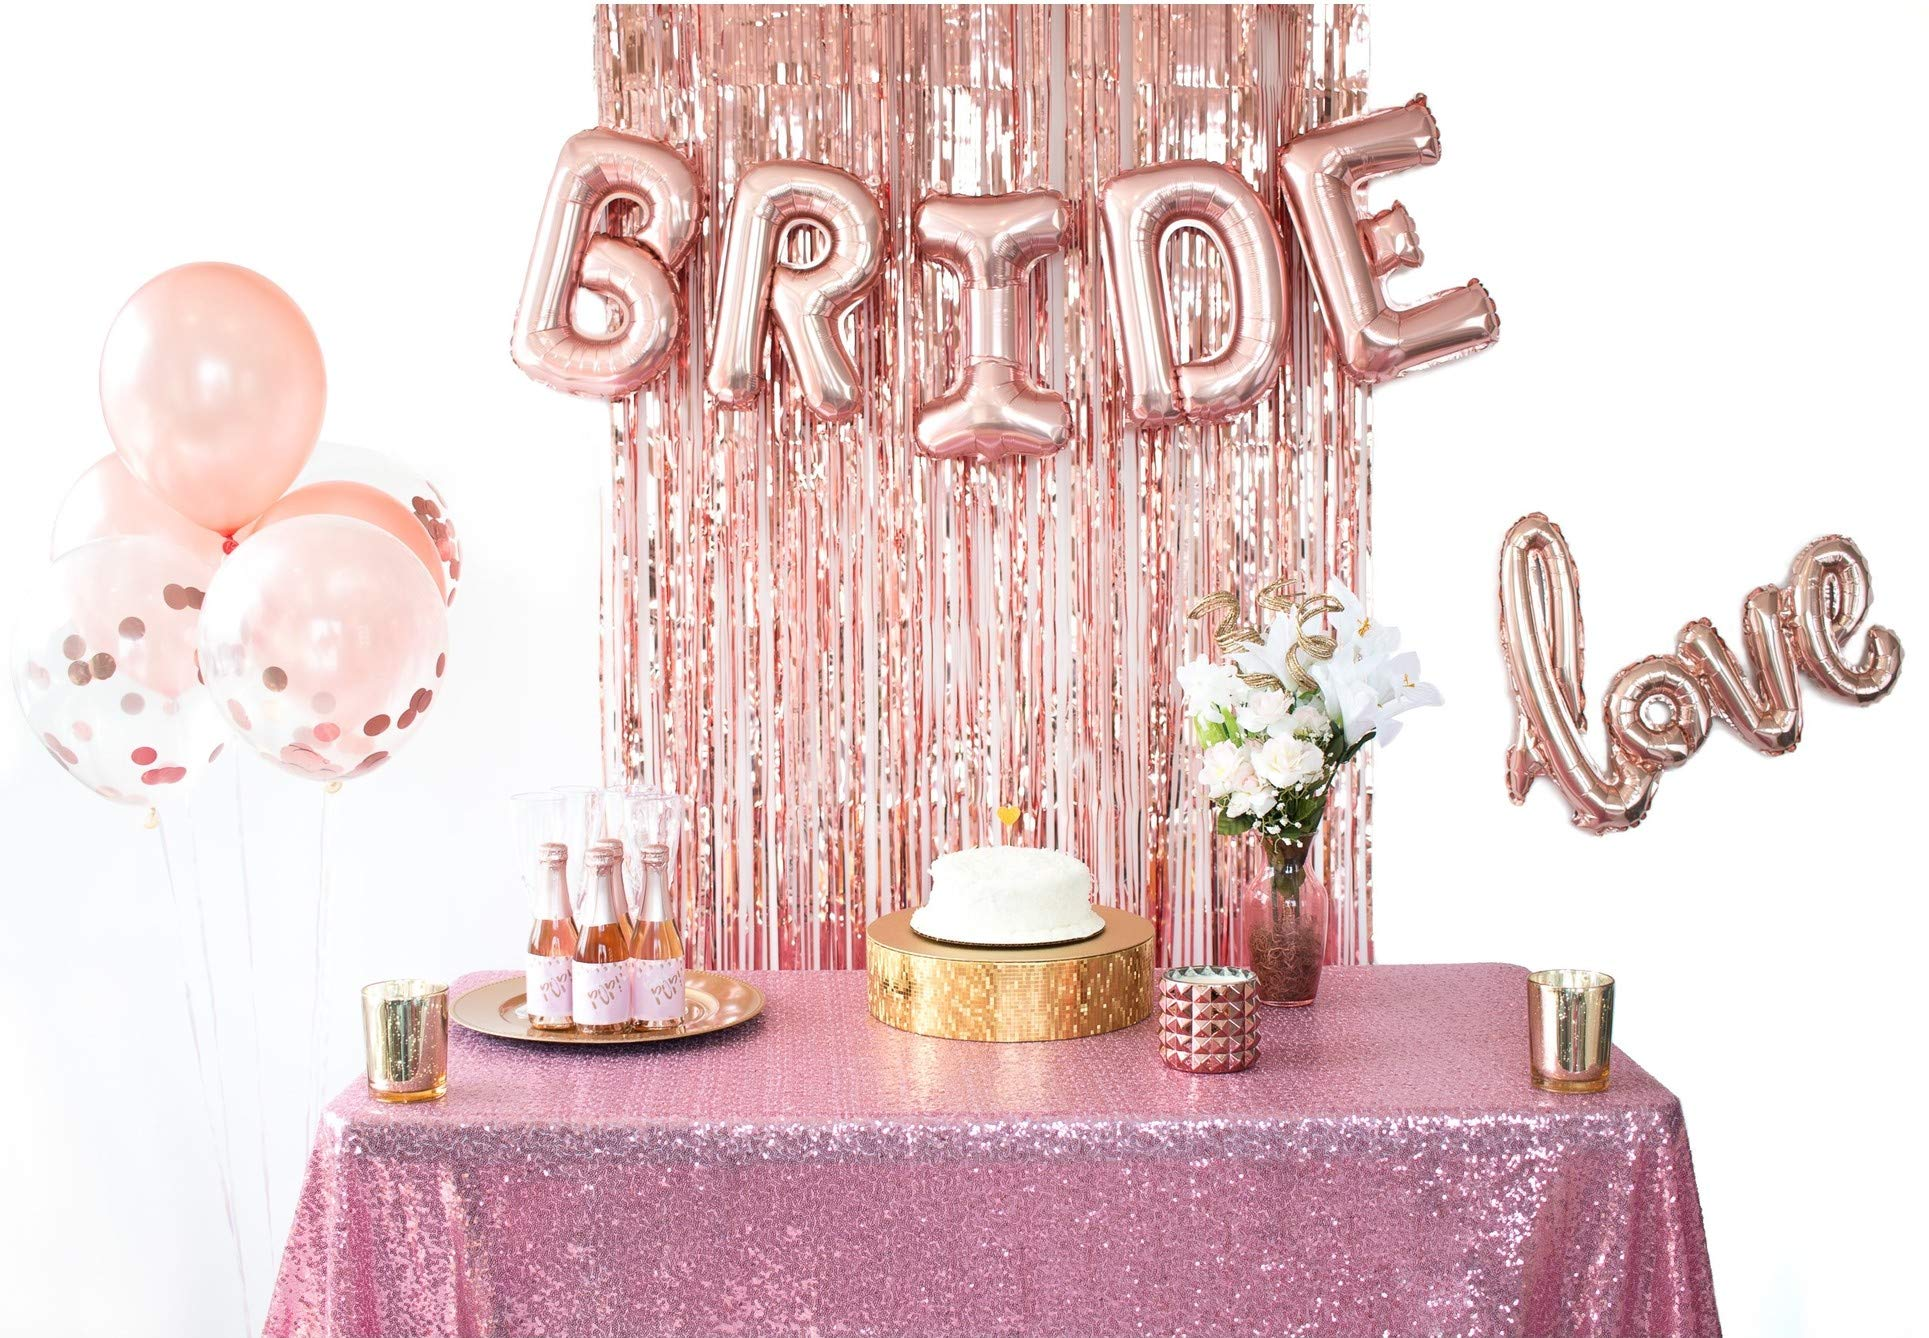 Rose Gold Bridal Shower Decorations & Bachelorette Party Balloons- Kit Includes: Bride & Love Foil Balloons, Rose Gold Fringe Curtain, Confetti & Rose Gold Latex Balloons by Mandie's Party Shop by Mandie's Party Shop